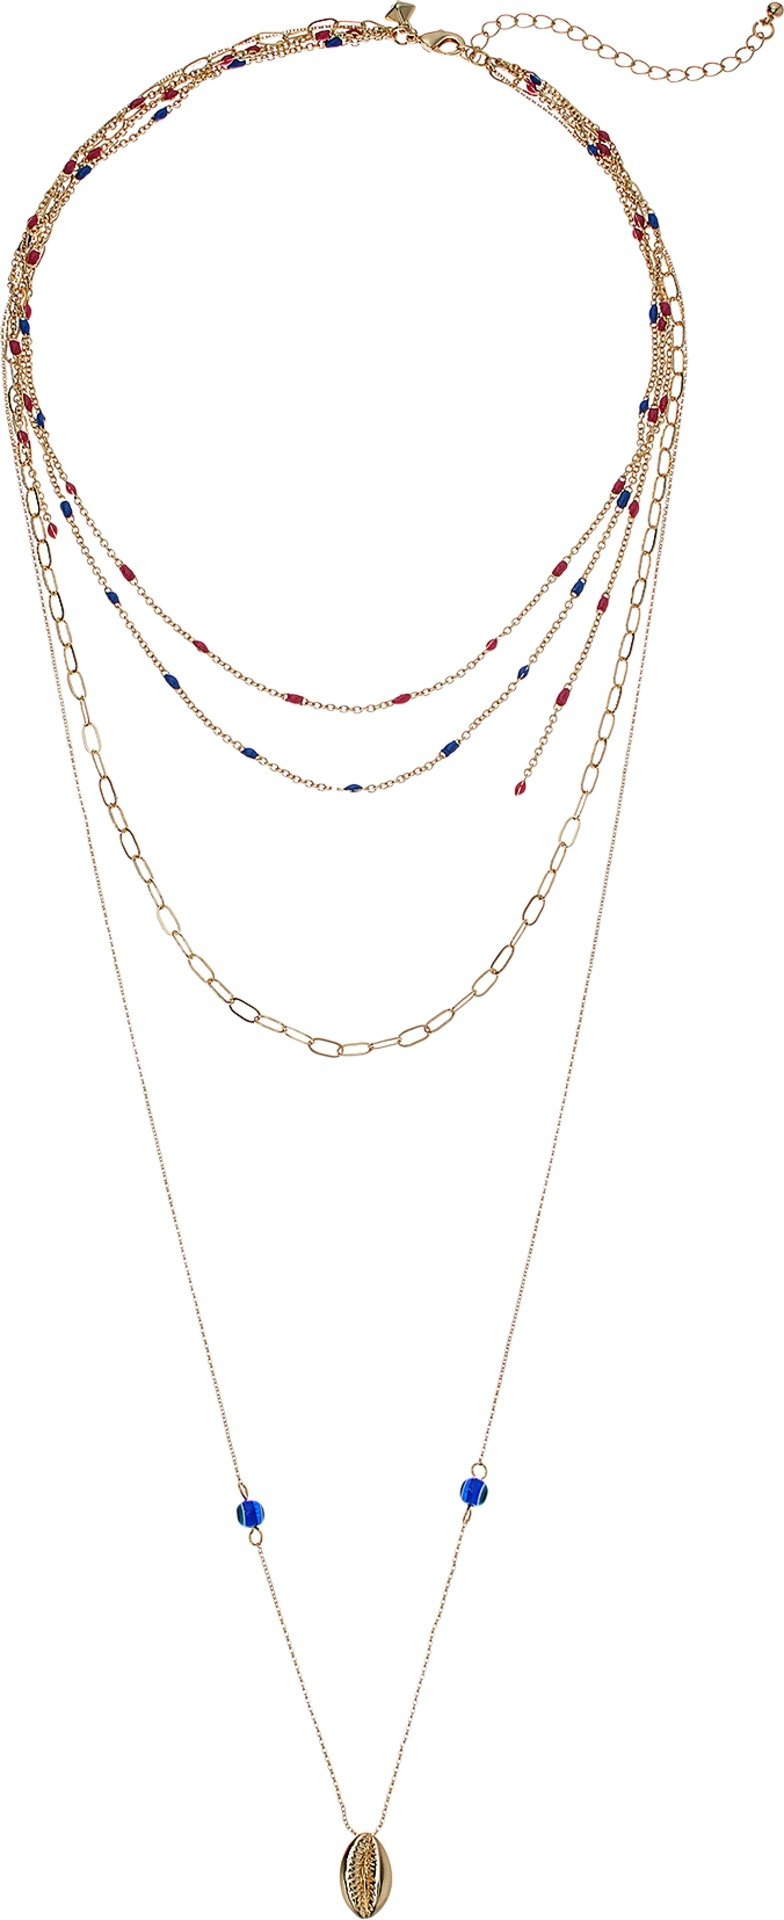 Rebecca Minkoff Women's Beachy Layered Chains Necklace Gold One Size